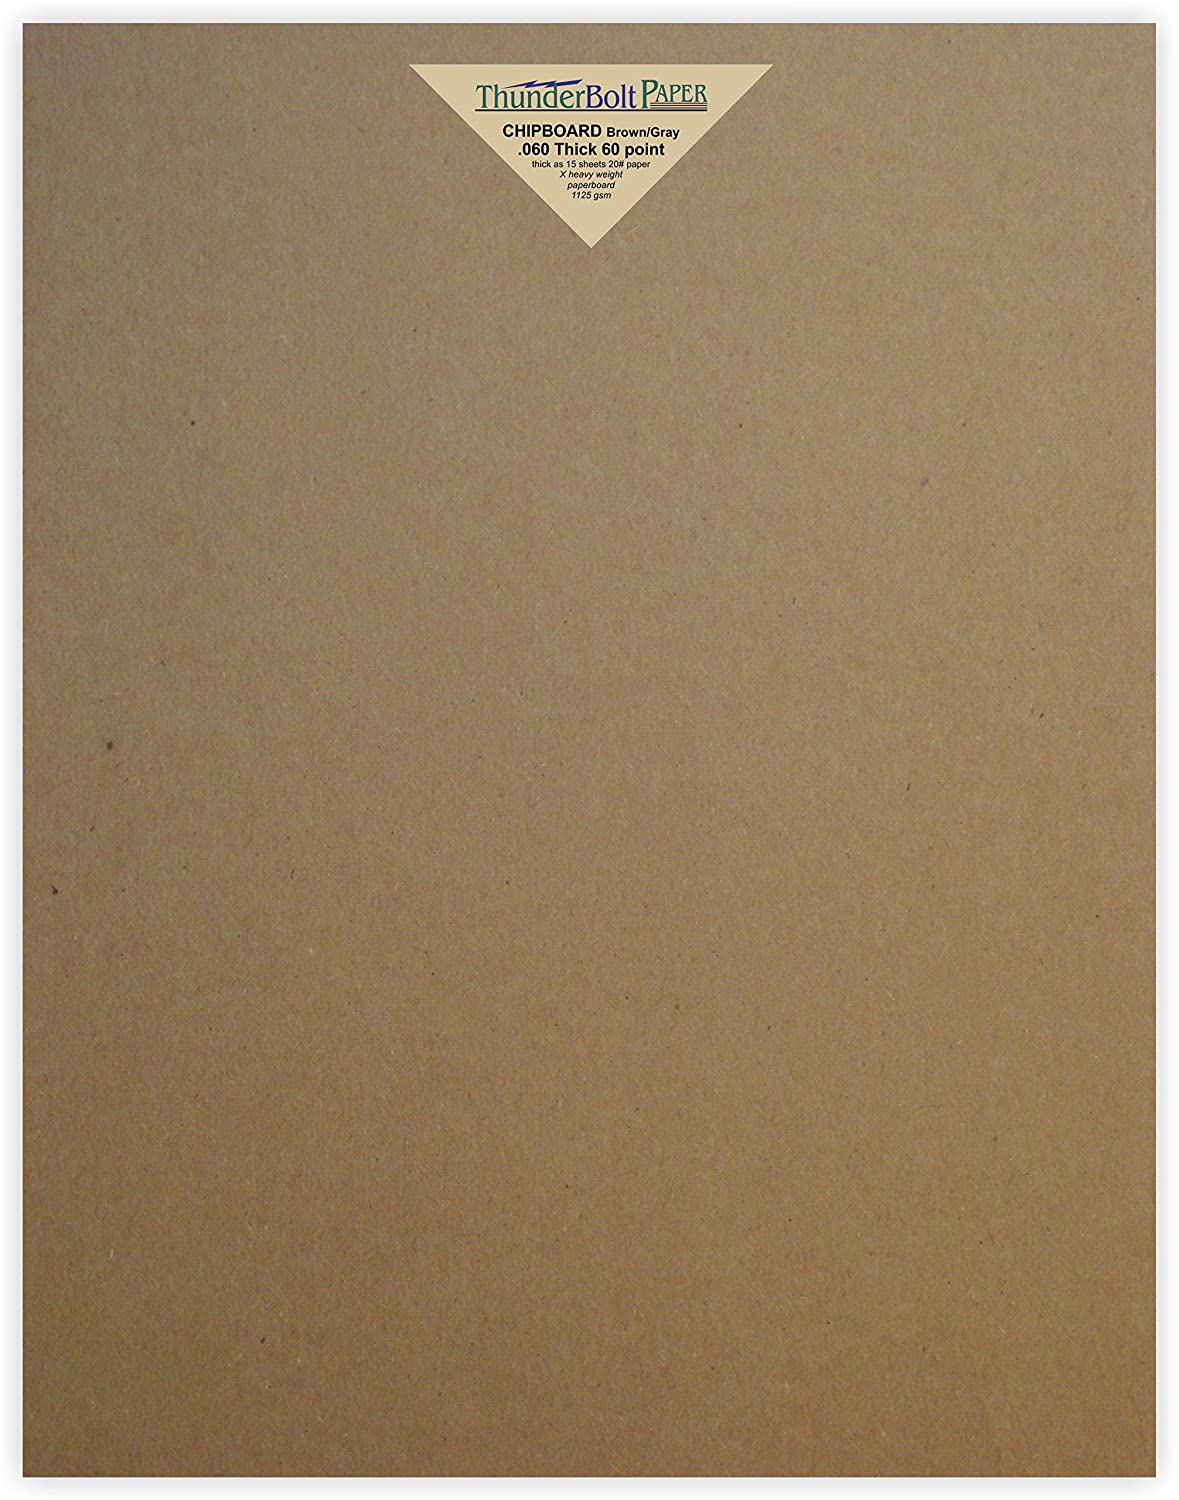 4 Sheets Brown Chipboard 80 Point Extra Thick 11 X 14 Inches Photo|Scrapbook Size .080 Caliper XX Heavy Cardboard as Thick as 20 Sheets 20# Paper TBP